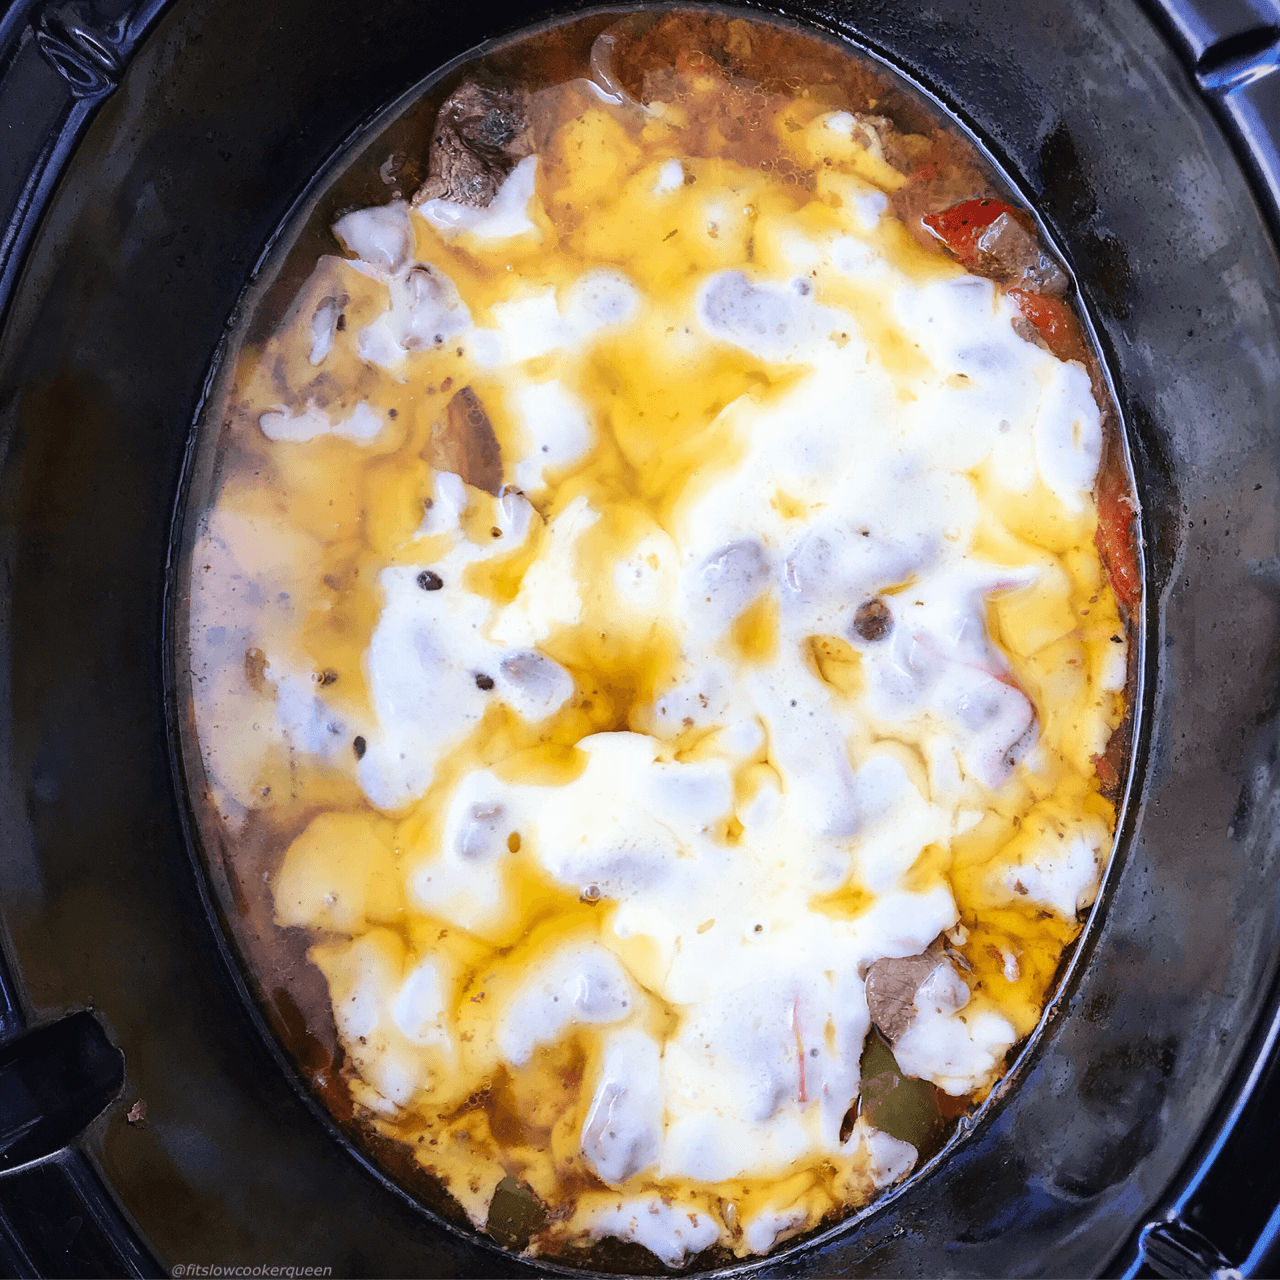 Nutritious Keto Crockpot Recipes: Low Carb Slow Cooker Philly Cheesesteaks